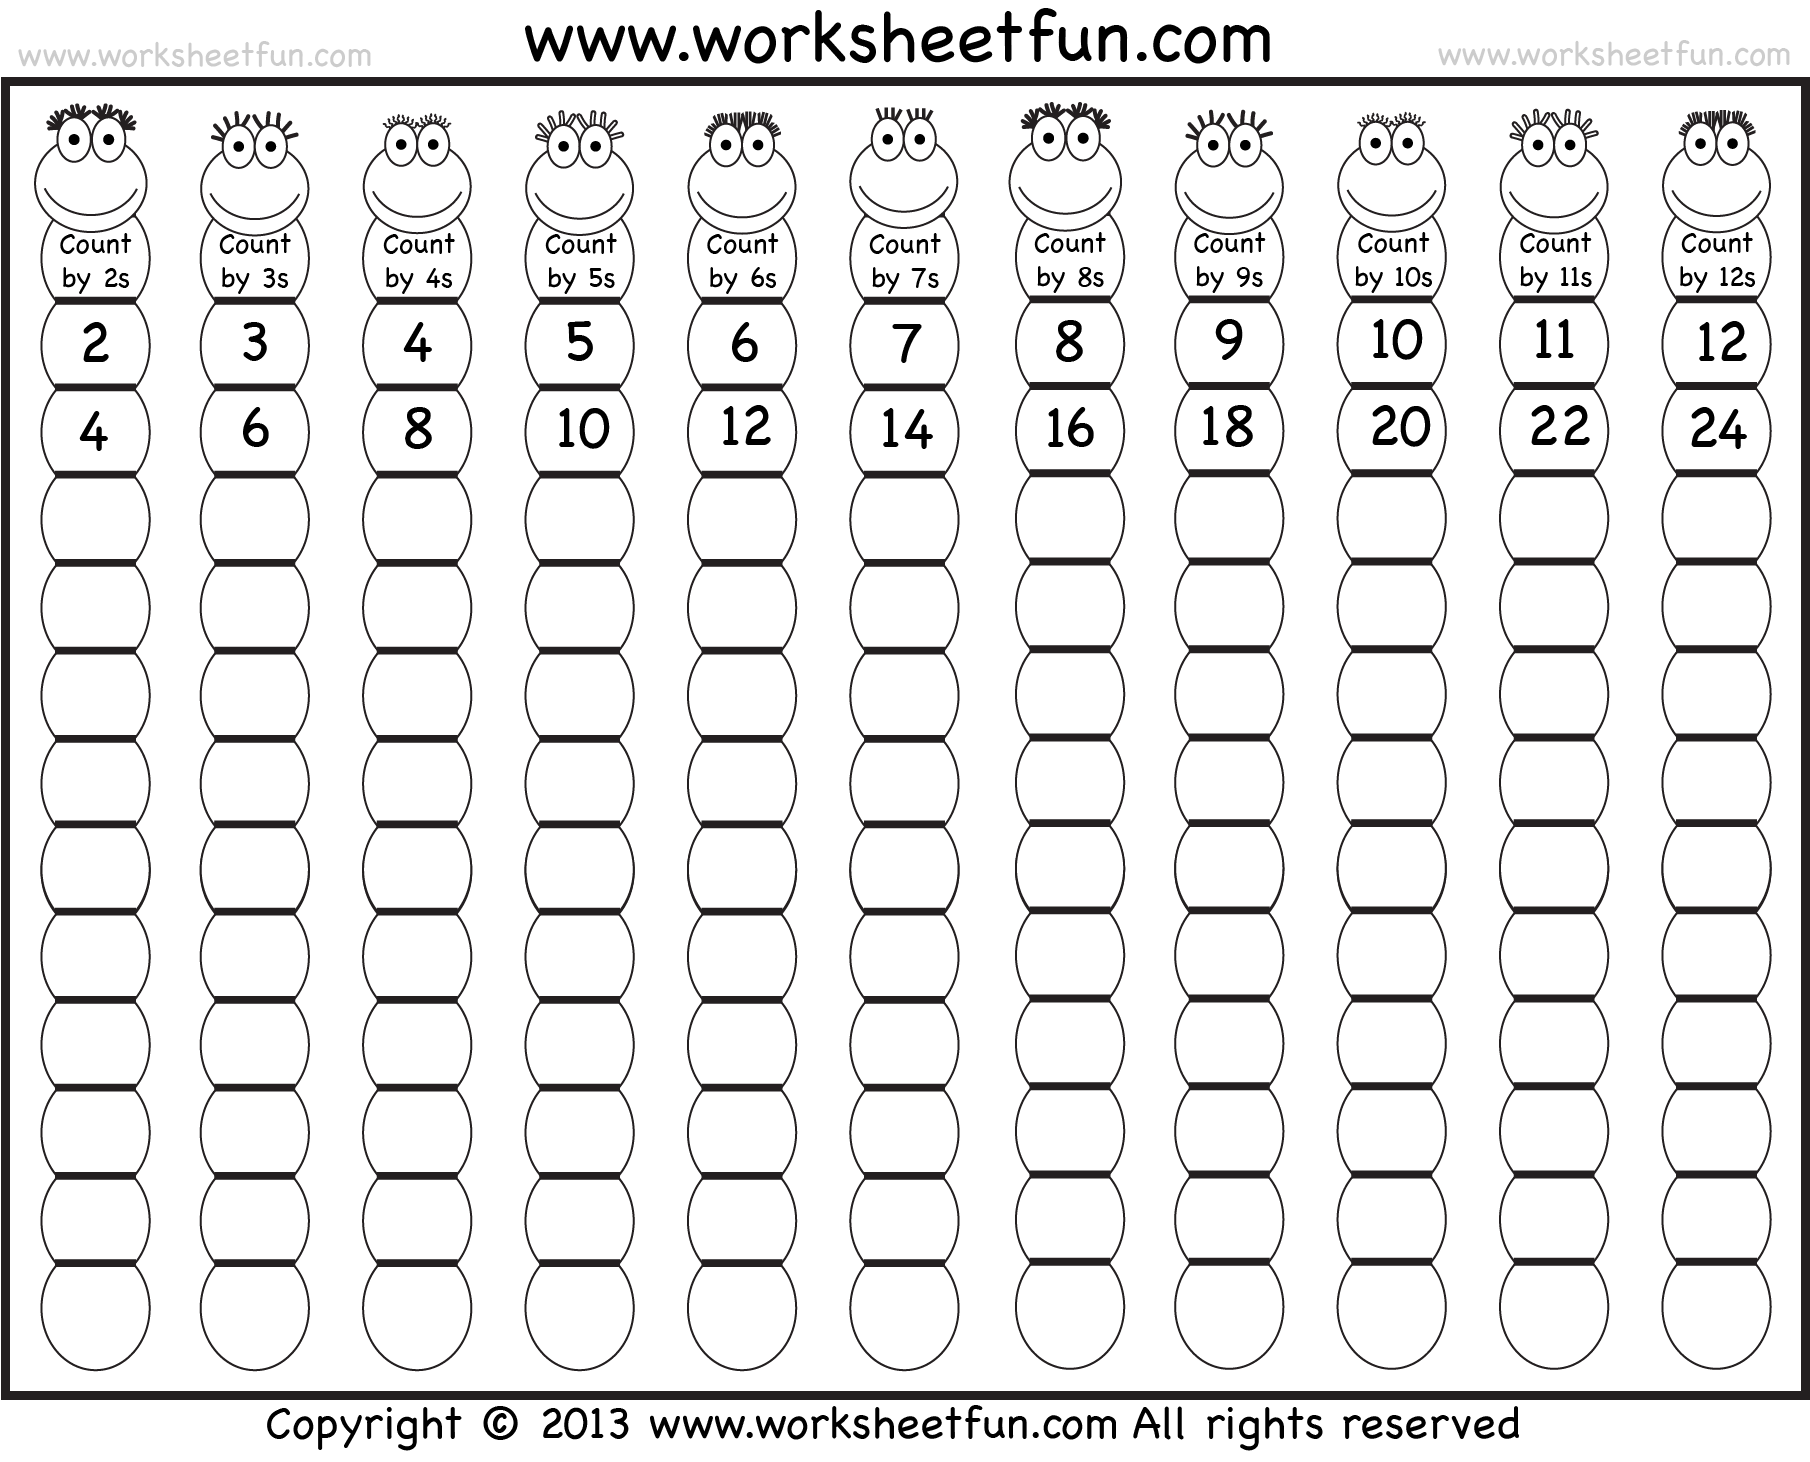 worksheet Skip Count skip counting cc cycle 1 pinterest arbeidsark counting